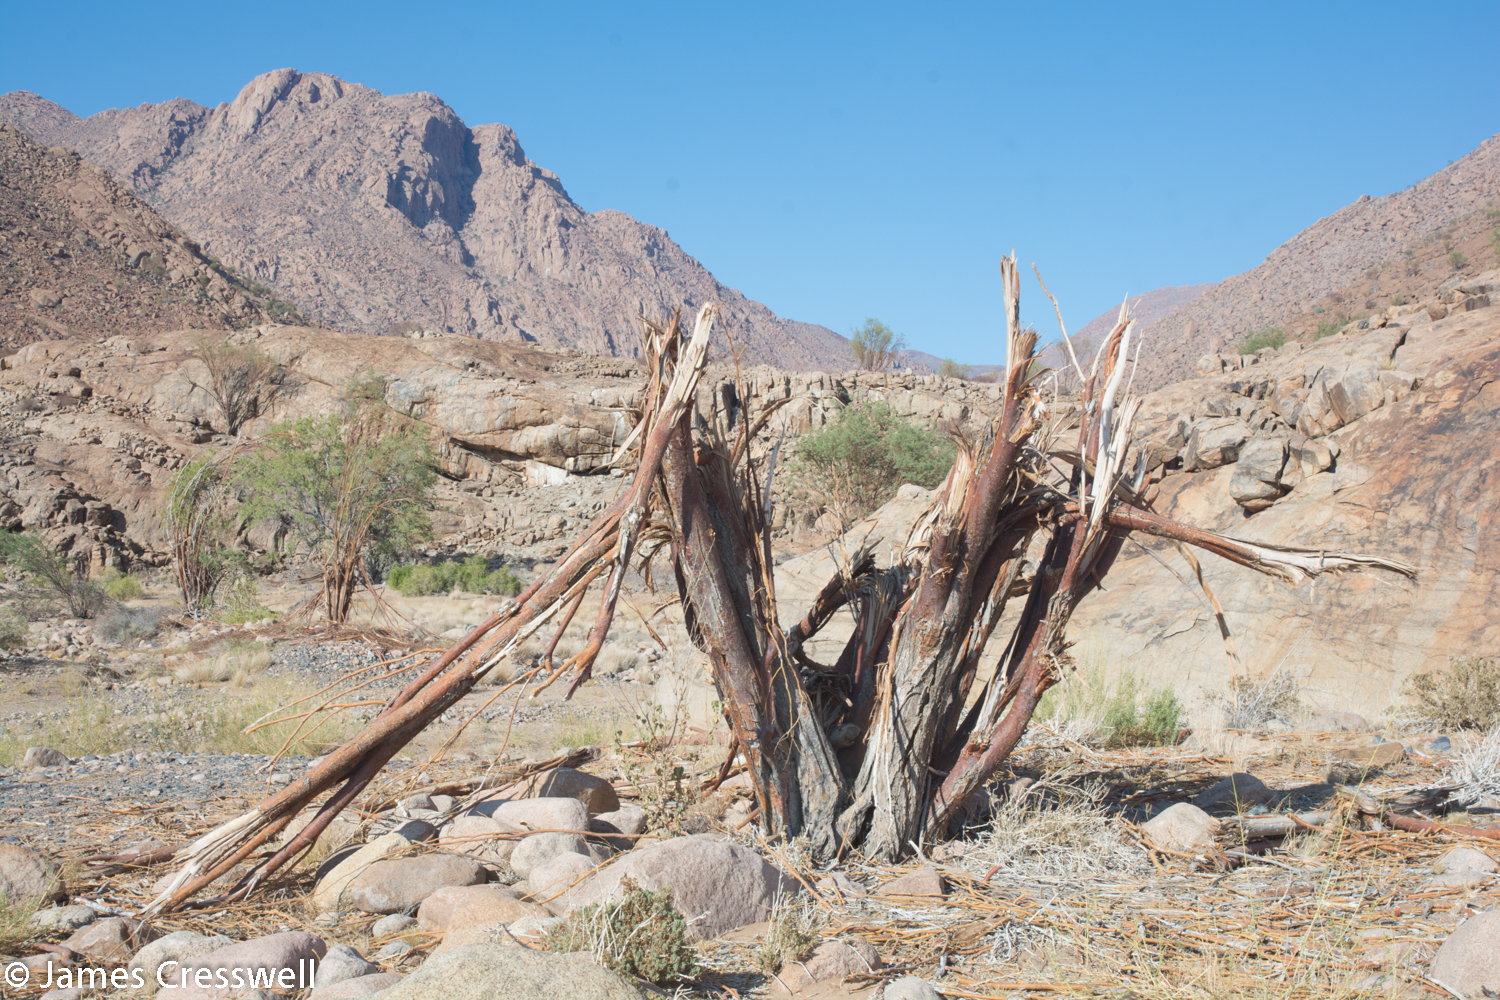 A tree damaged by Nambia's famous Desert Elephants, Brandberg, Namibia.